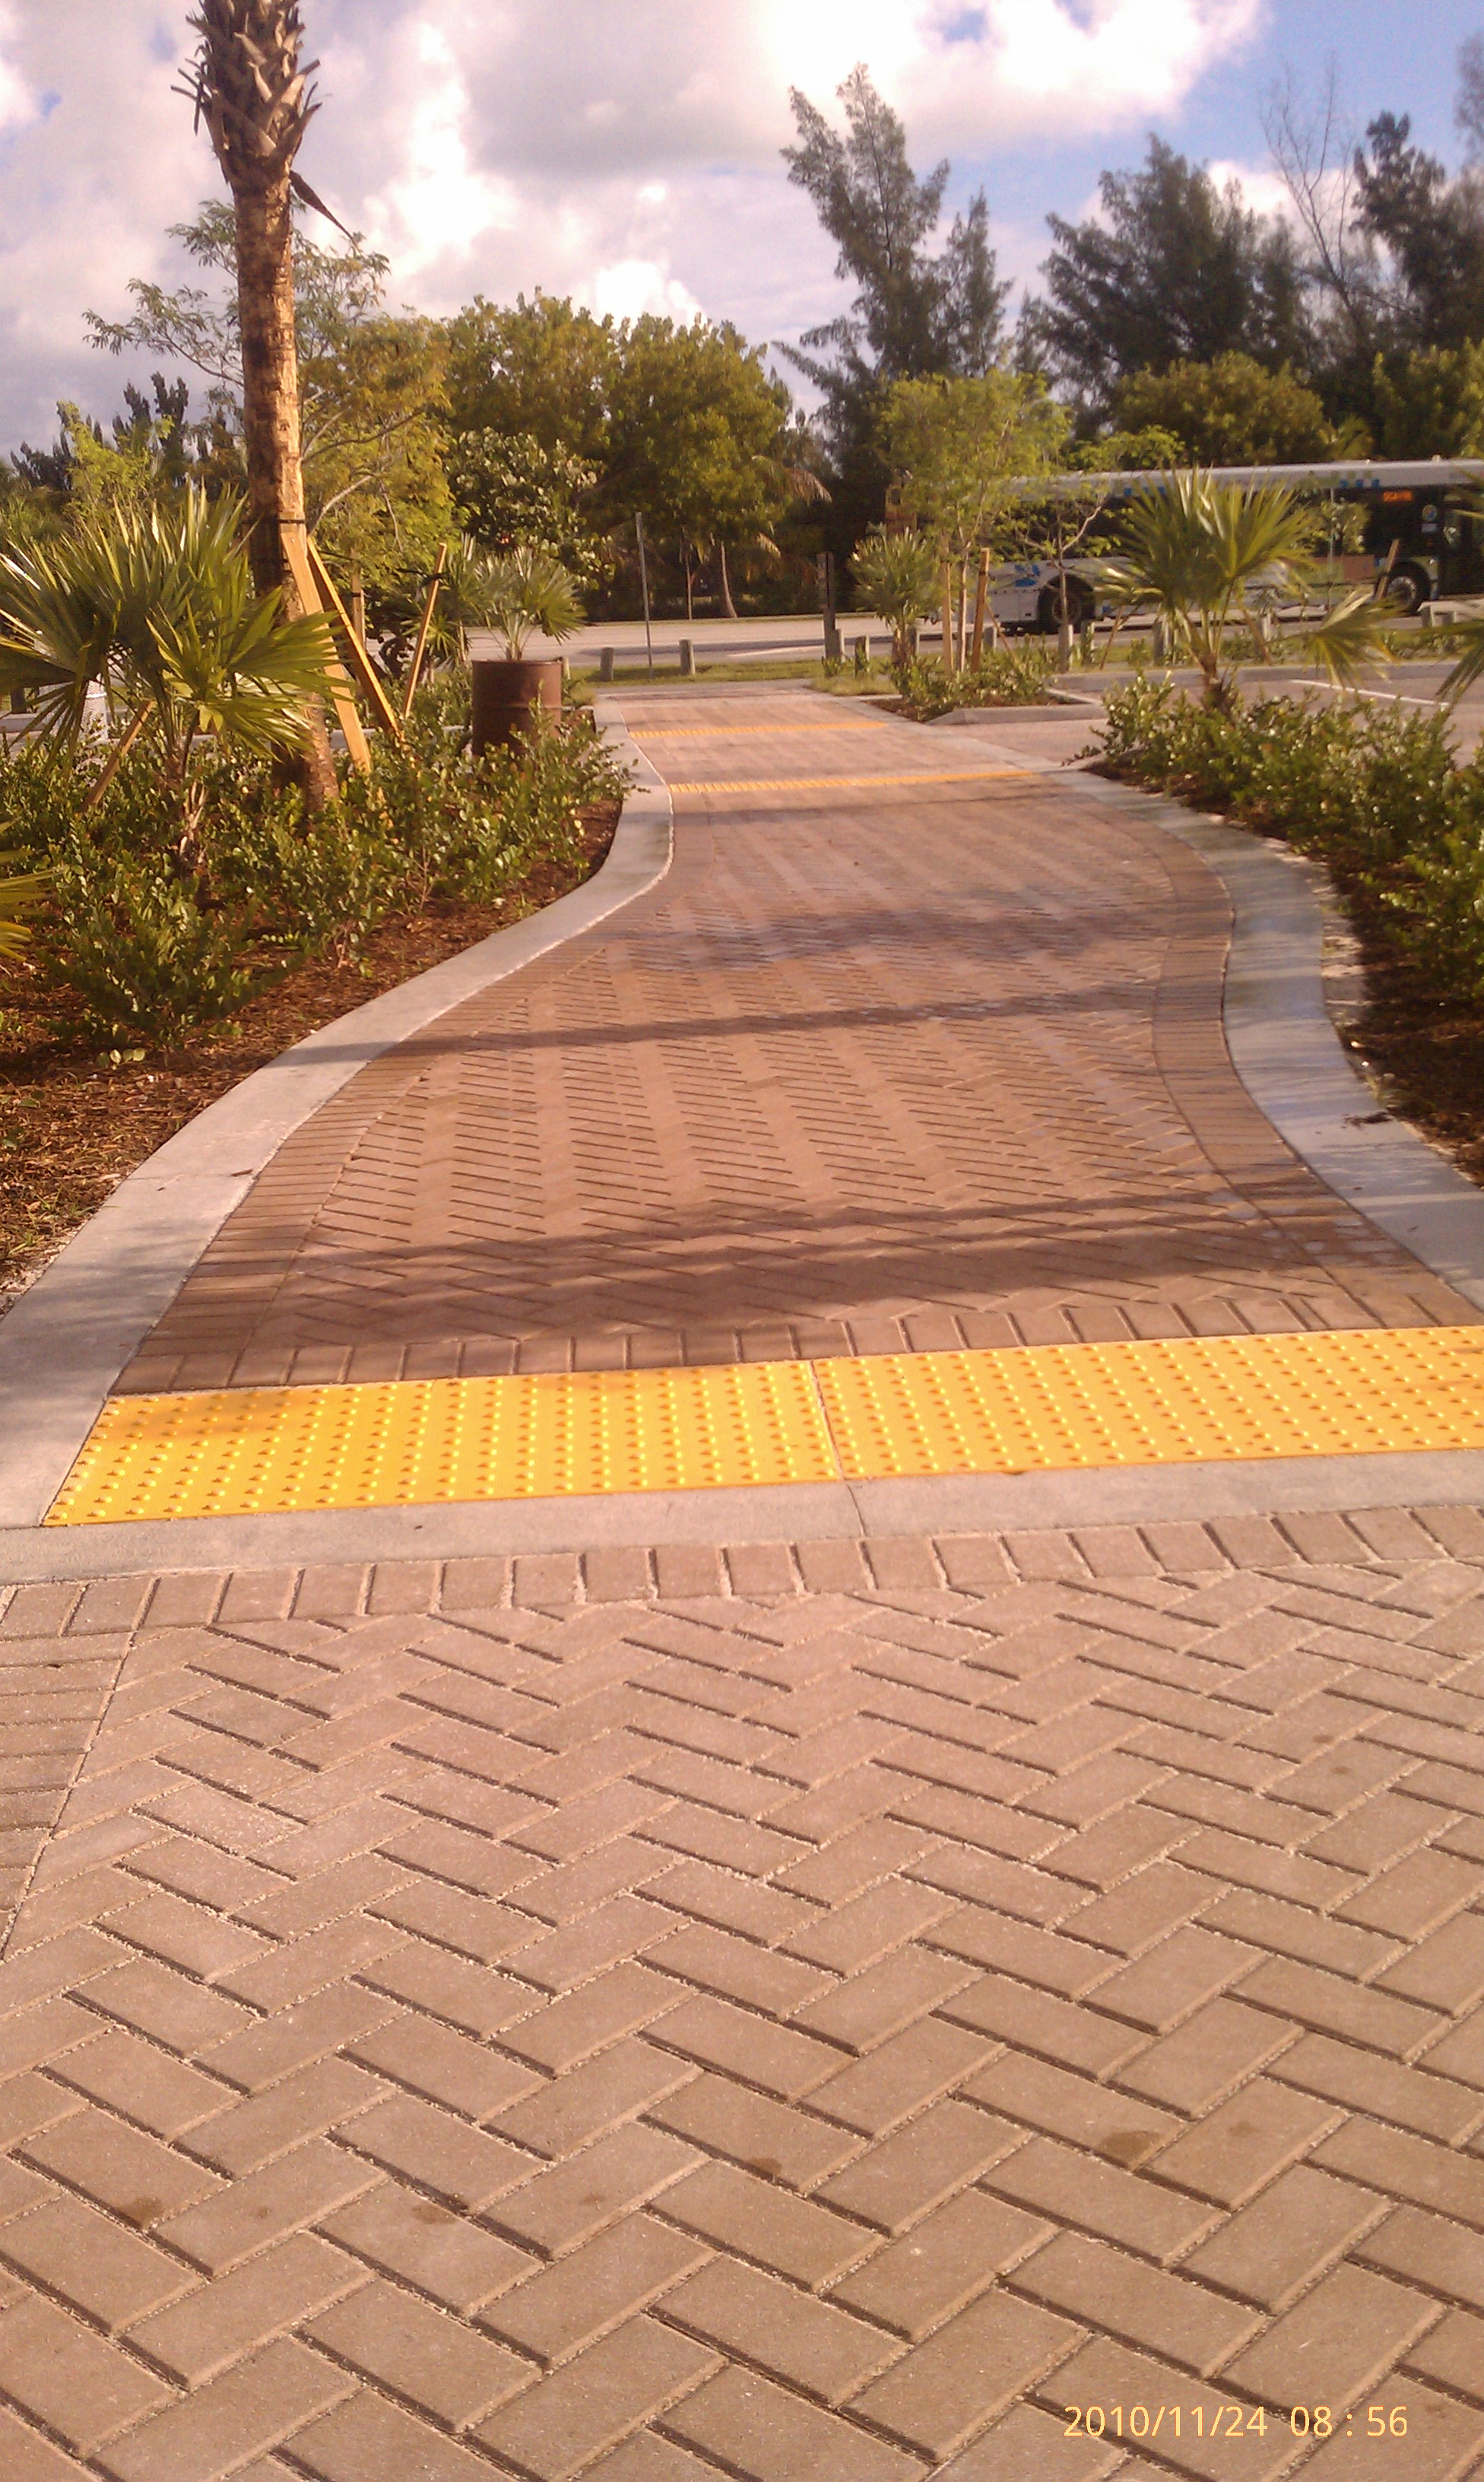 Paver walkways and landscaping at Rickenbacker project